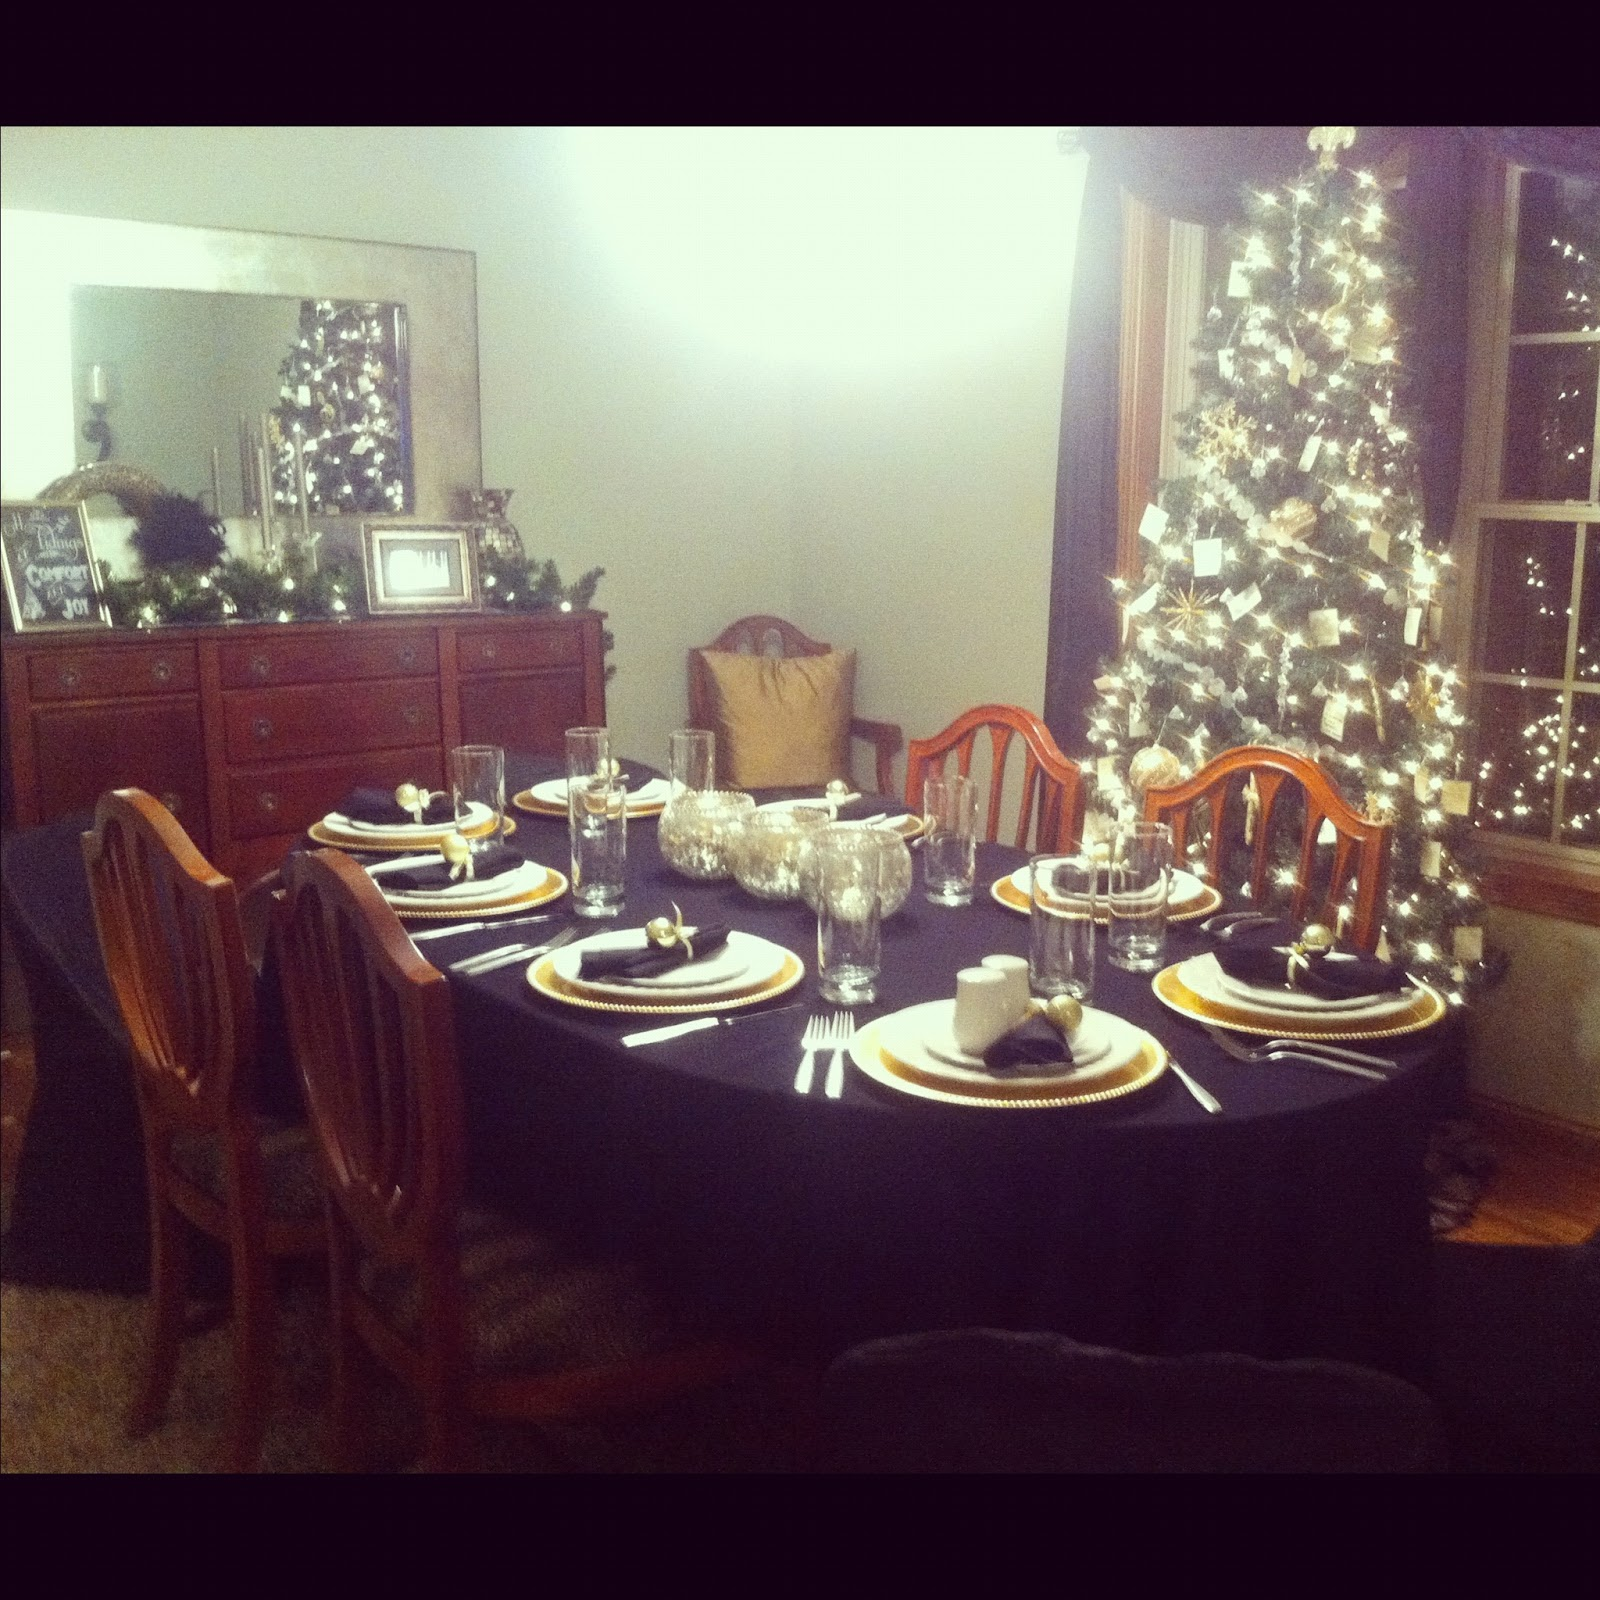 Messy Dining Room: ~ I'M NOT MESSY... I'M JUST BUSY ~: Progressive Christmas